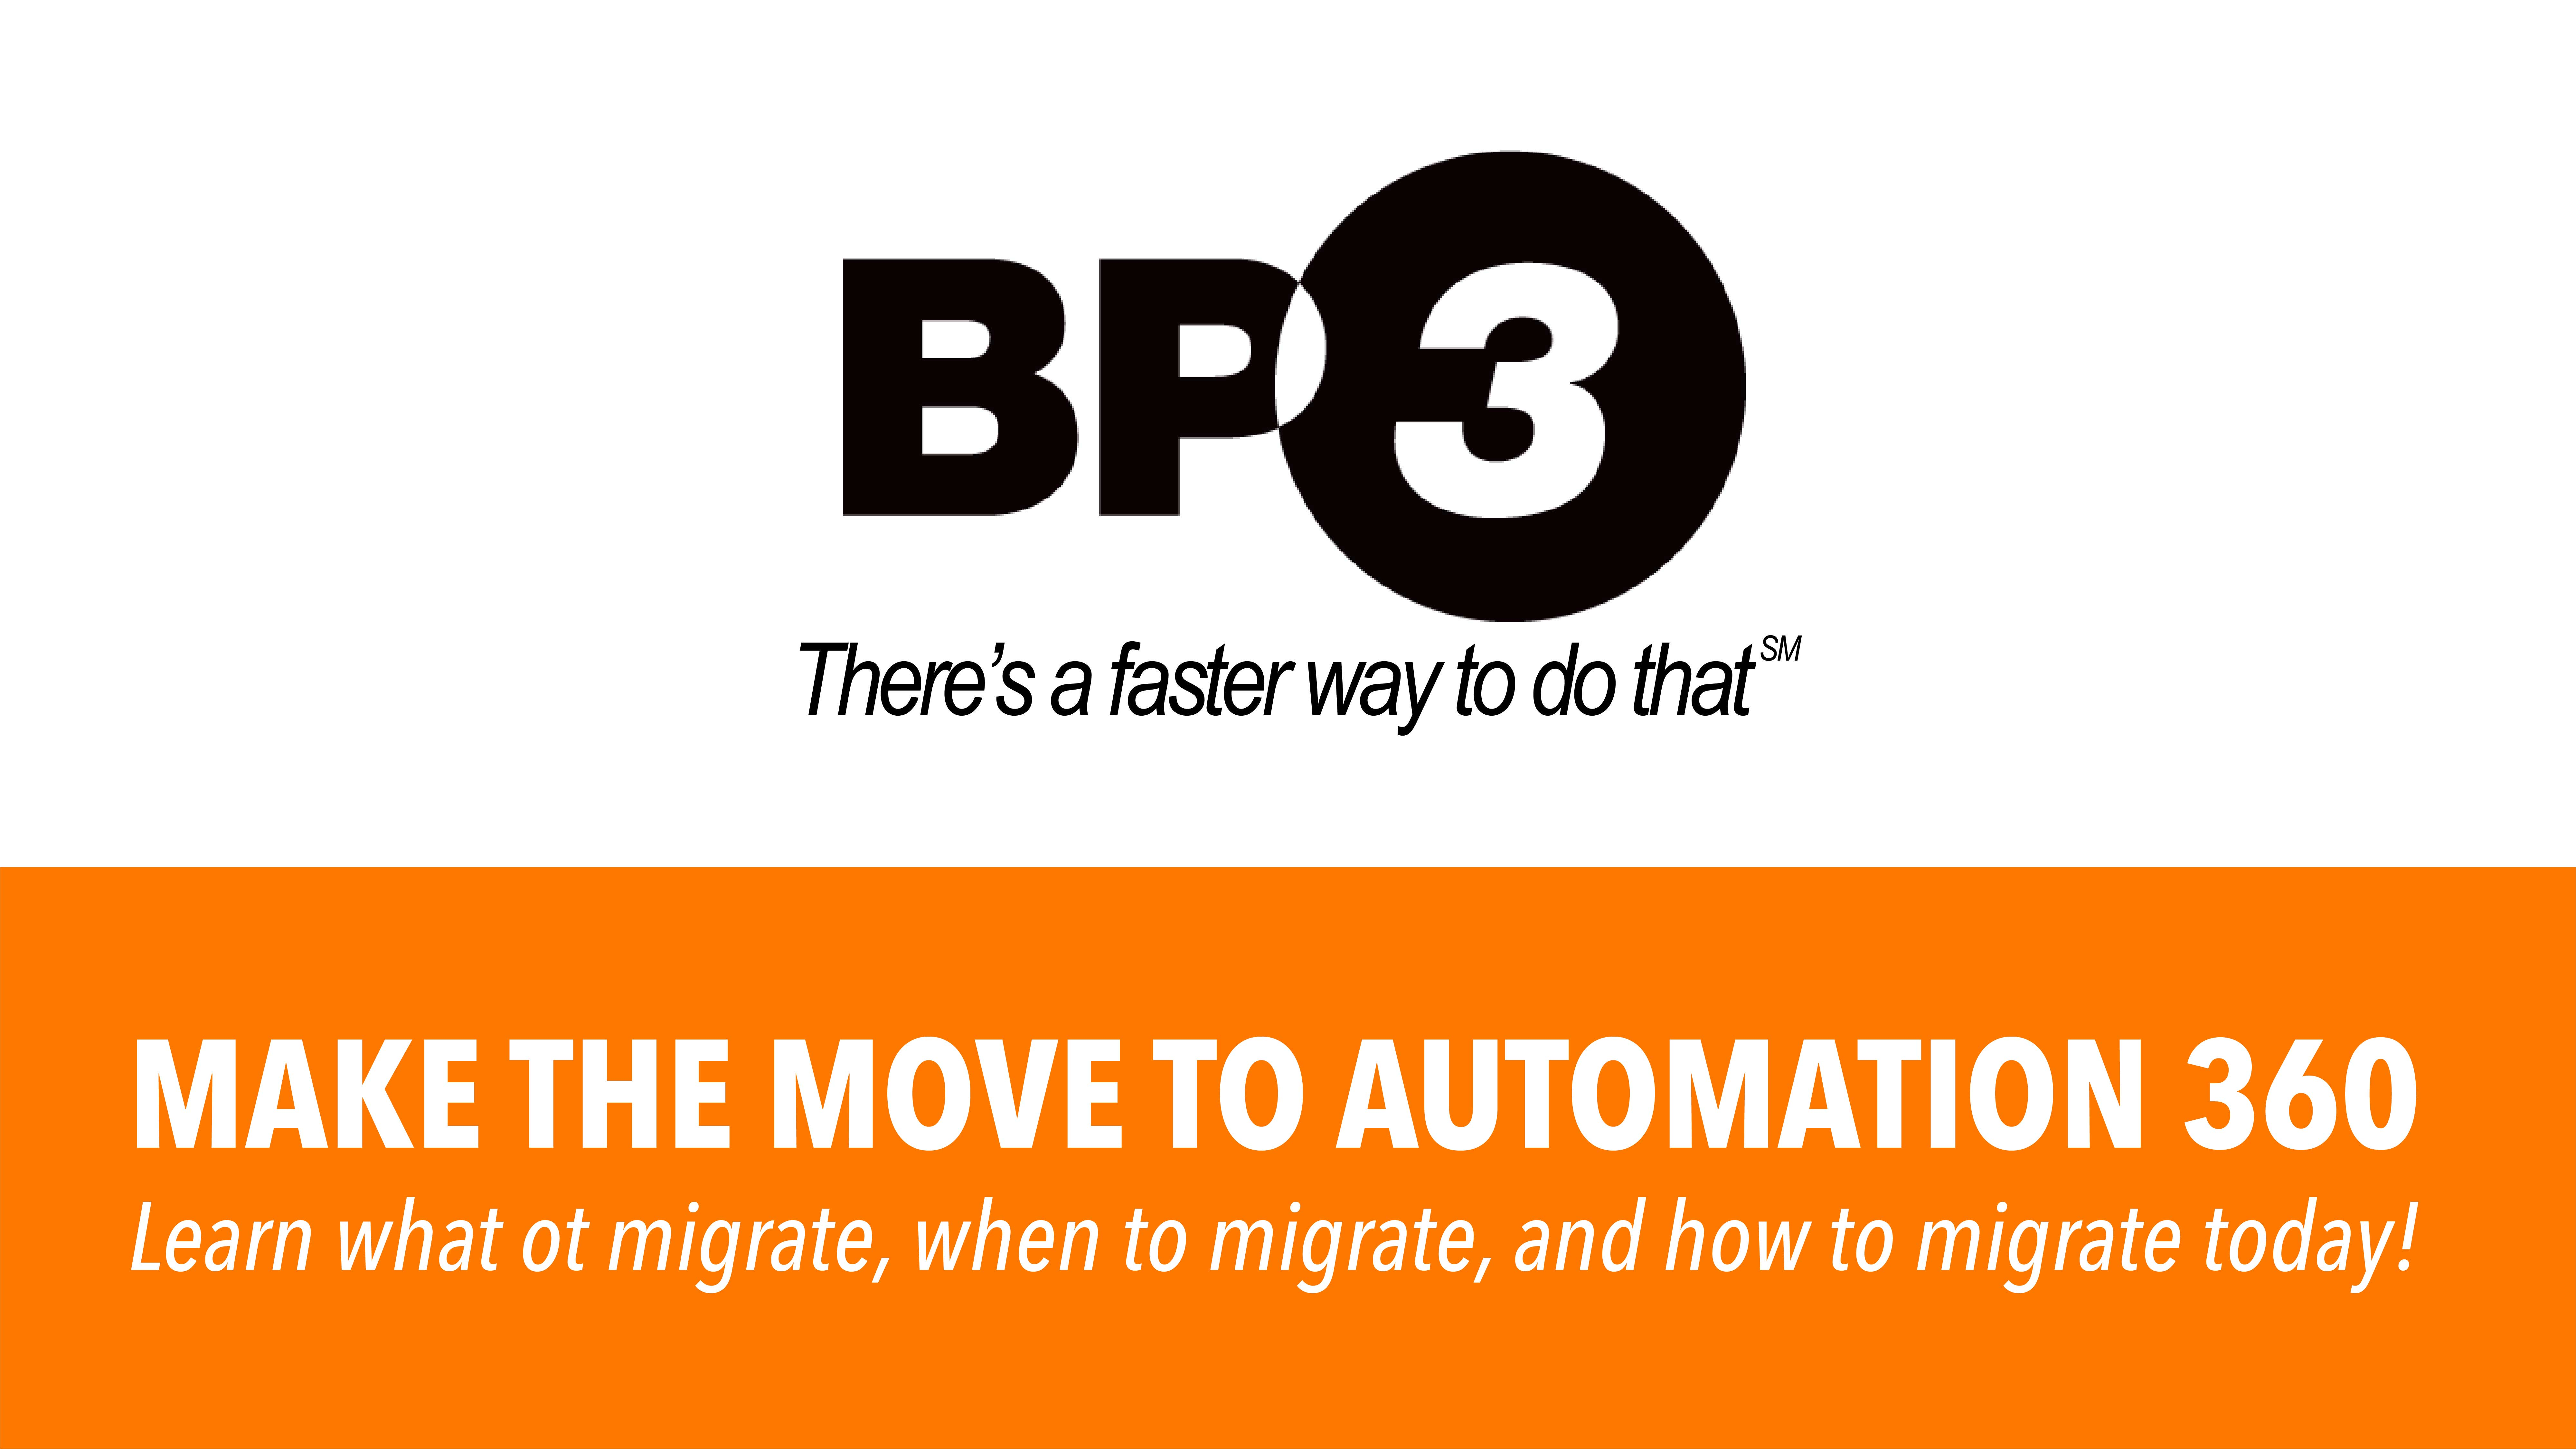 Migrating to Automation Anywhere's Automation 360